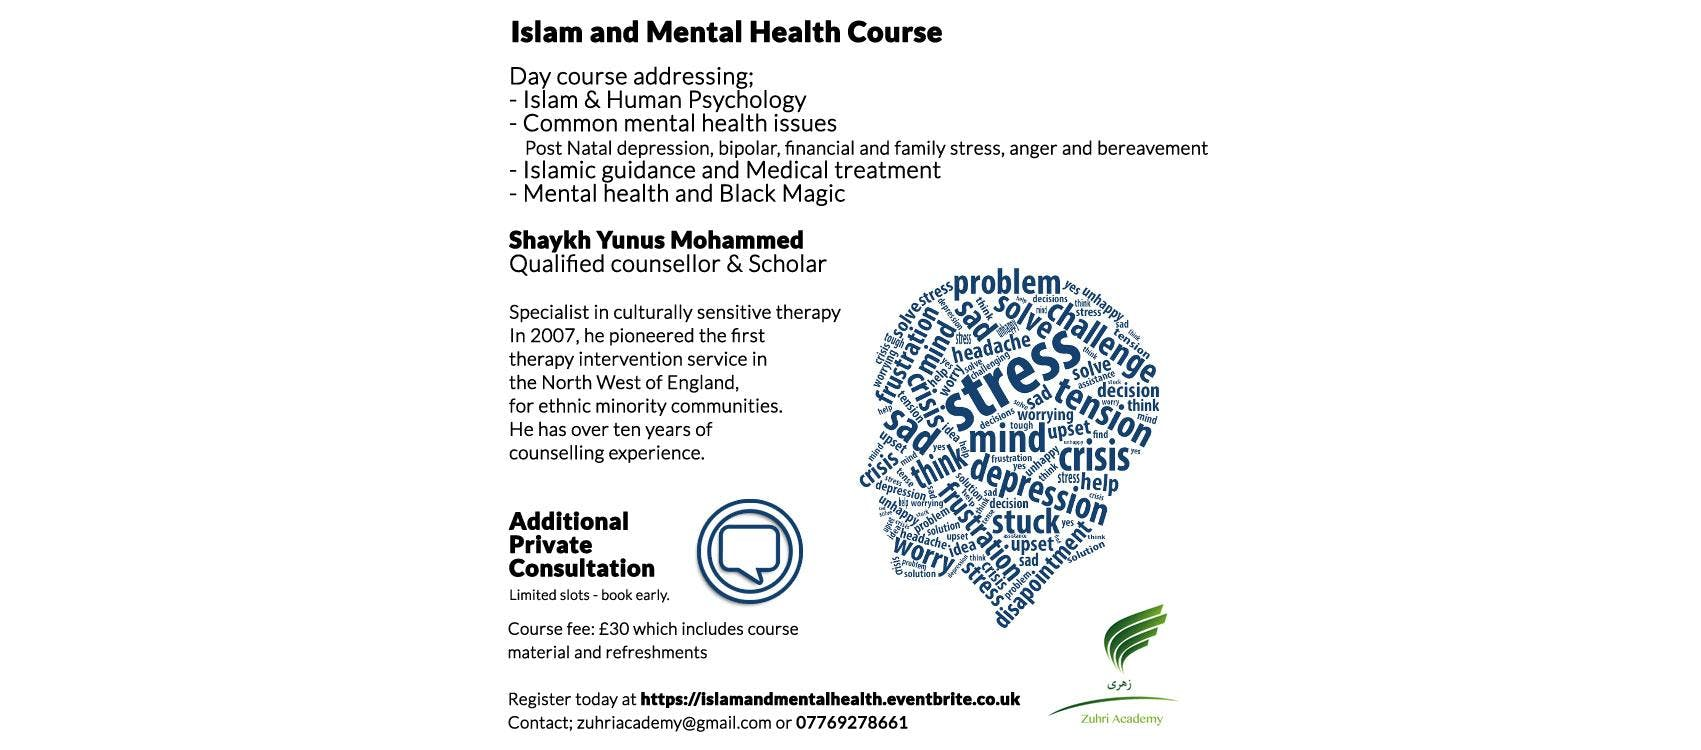 Islam and Mental health - 1 day course